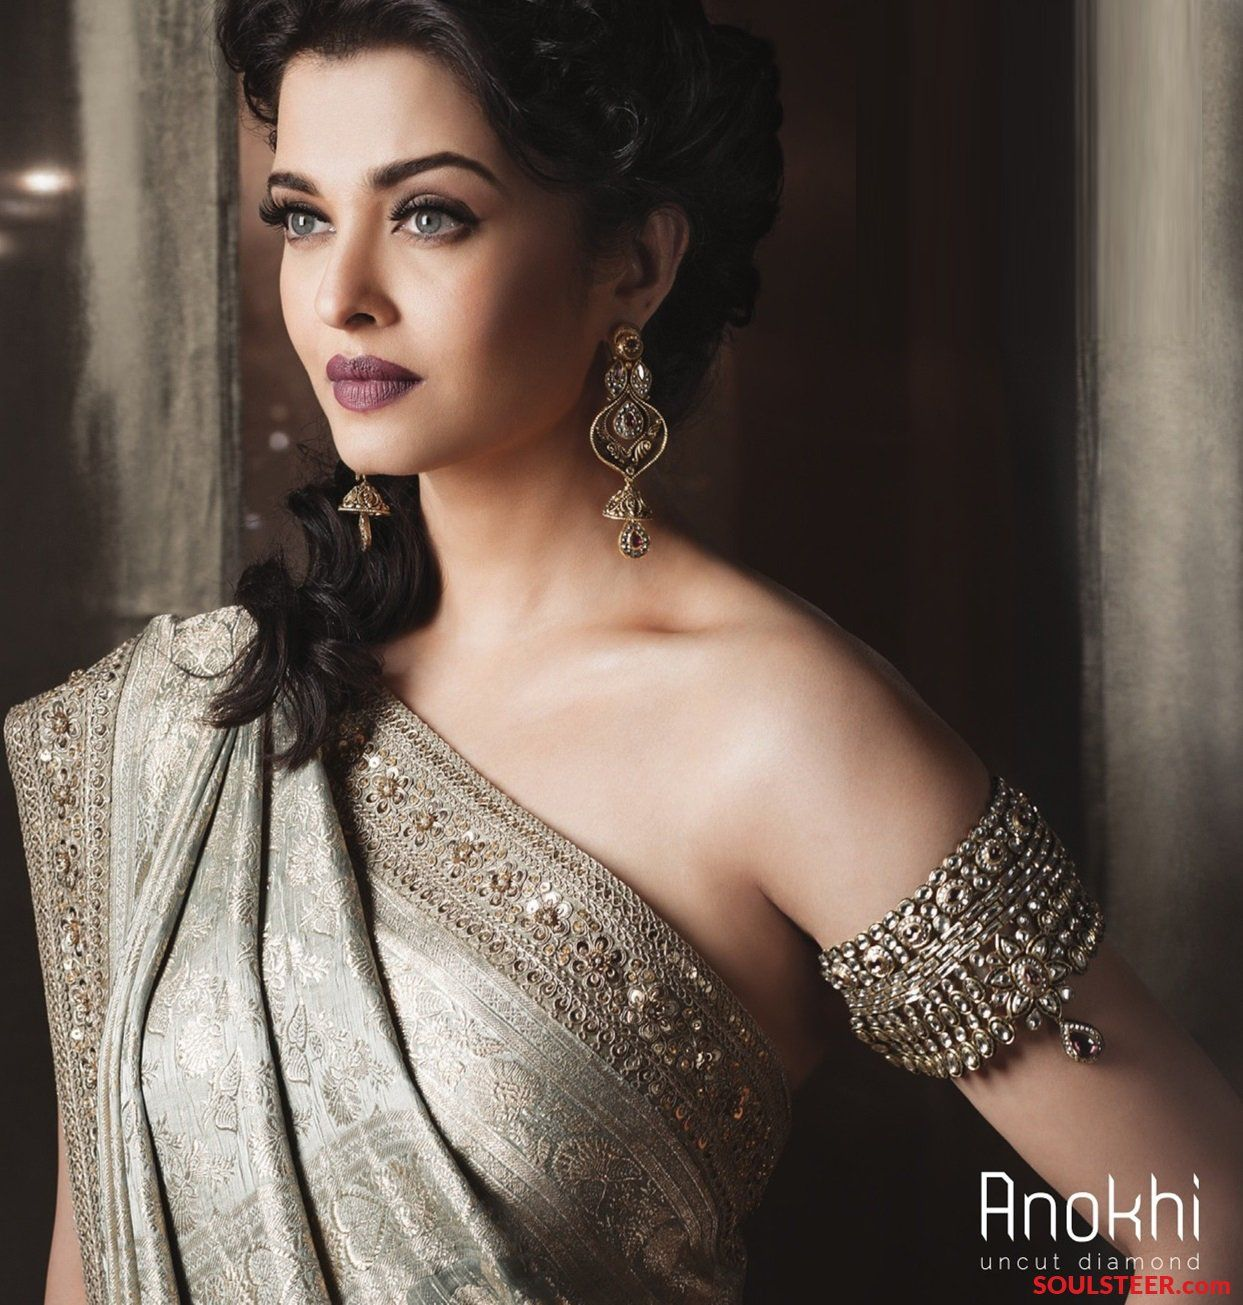 kalyan jewellers has launched its anokhi diamond series which is